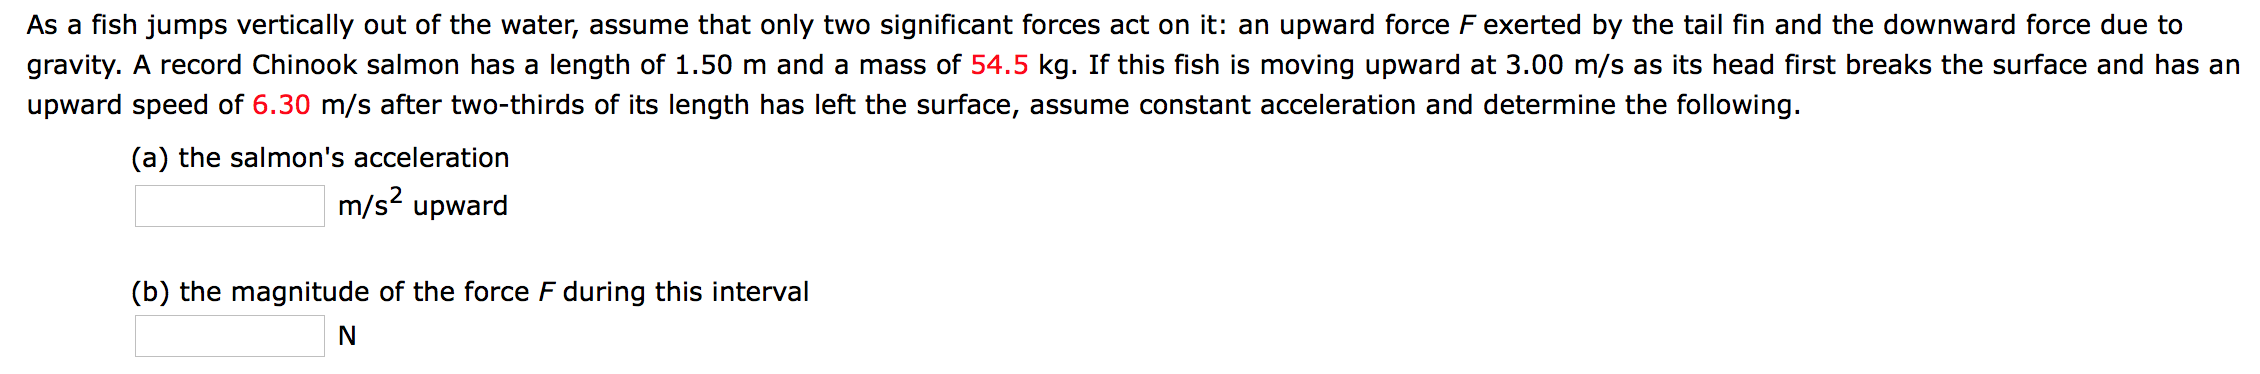 As a fish jumps vertically out of the water, assume that only two significant forces act on it: an upward force F exerted by the tail fin and the downward force due to gravity. A record Chinook salmon has a length of 1.50 m and a mass of 54.5 kg. If this fish is moving upward at 3.00 m/s as its head first breaks the surface and has an upward speed of 6.30 m/s after two-thirds of its length has left the surface, assume constant acceleration and determine the following. (a) the salmon's acceleration m/s2 upward (b) the magnitude of the force F during this interval